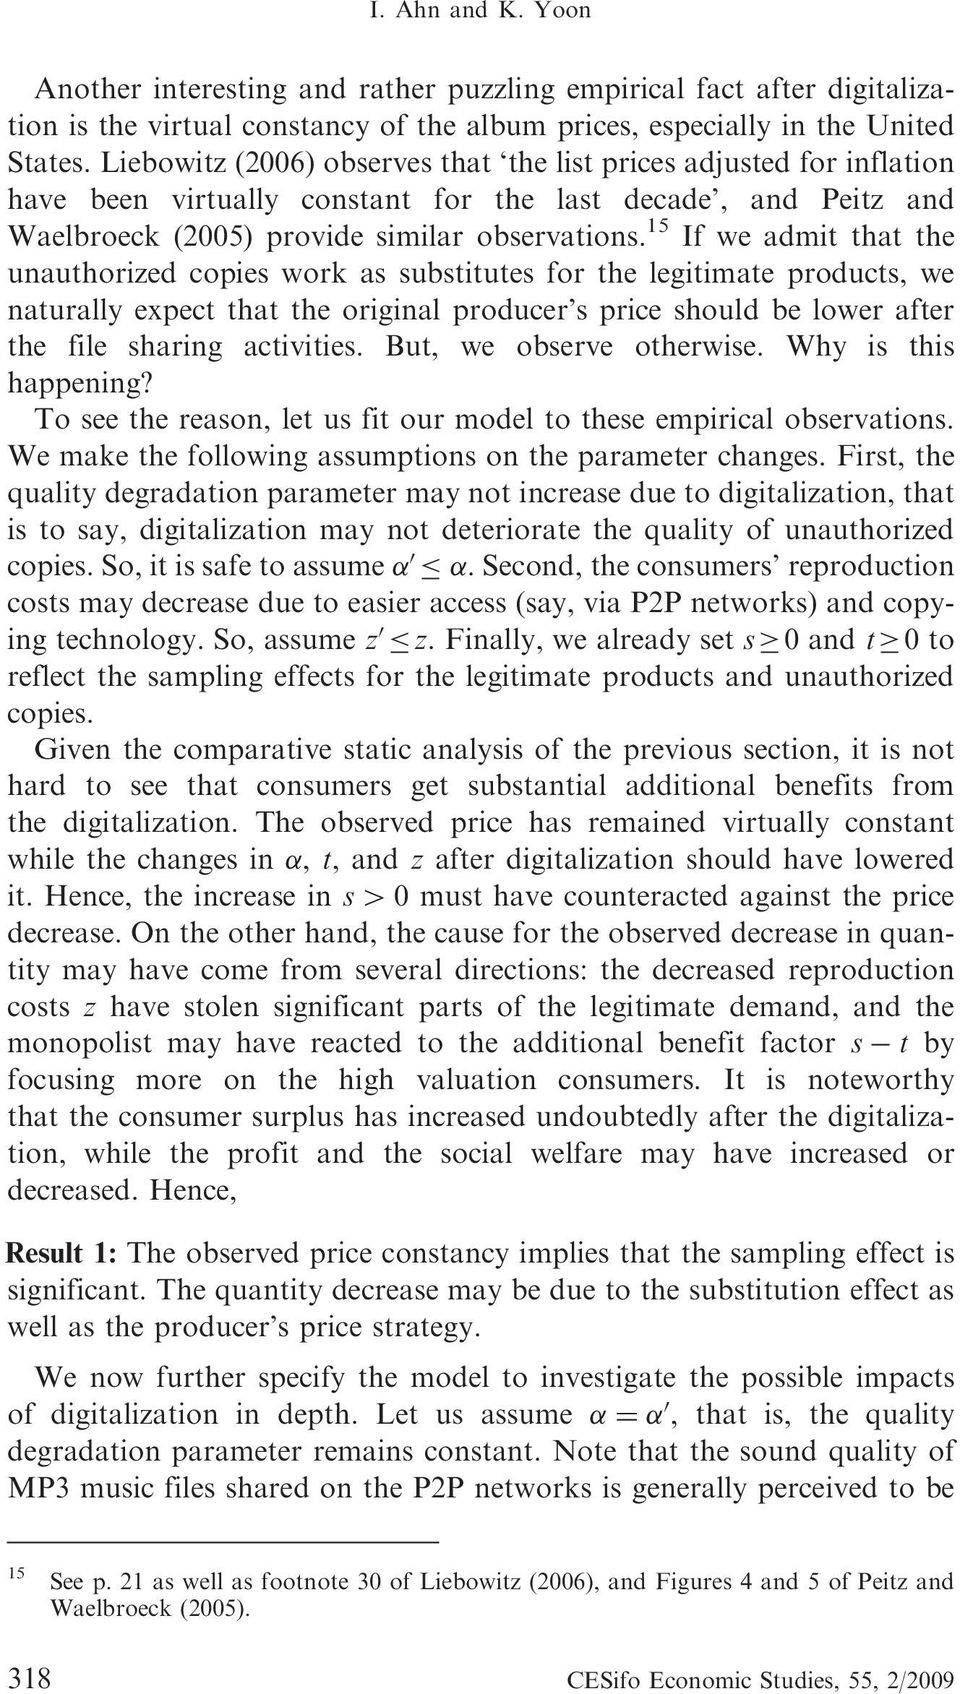 15 If we admit that the unauthorized copies work as substitutes for the legitimate products, we naturally expect that the original producer s price should be lower after the file sharing activities.